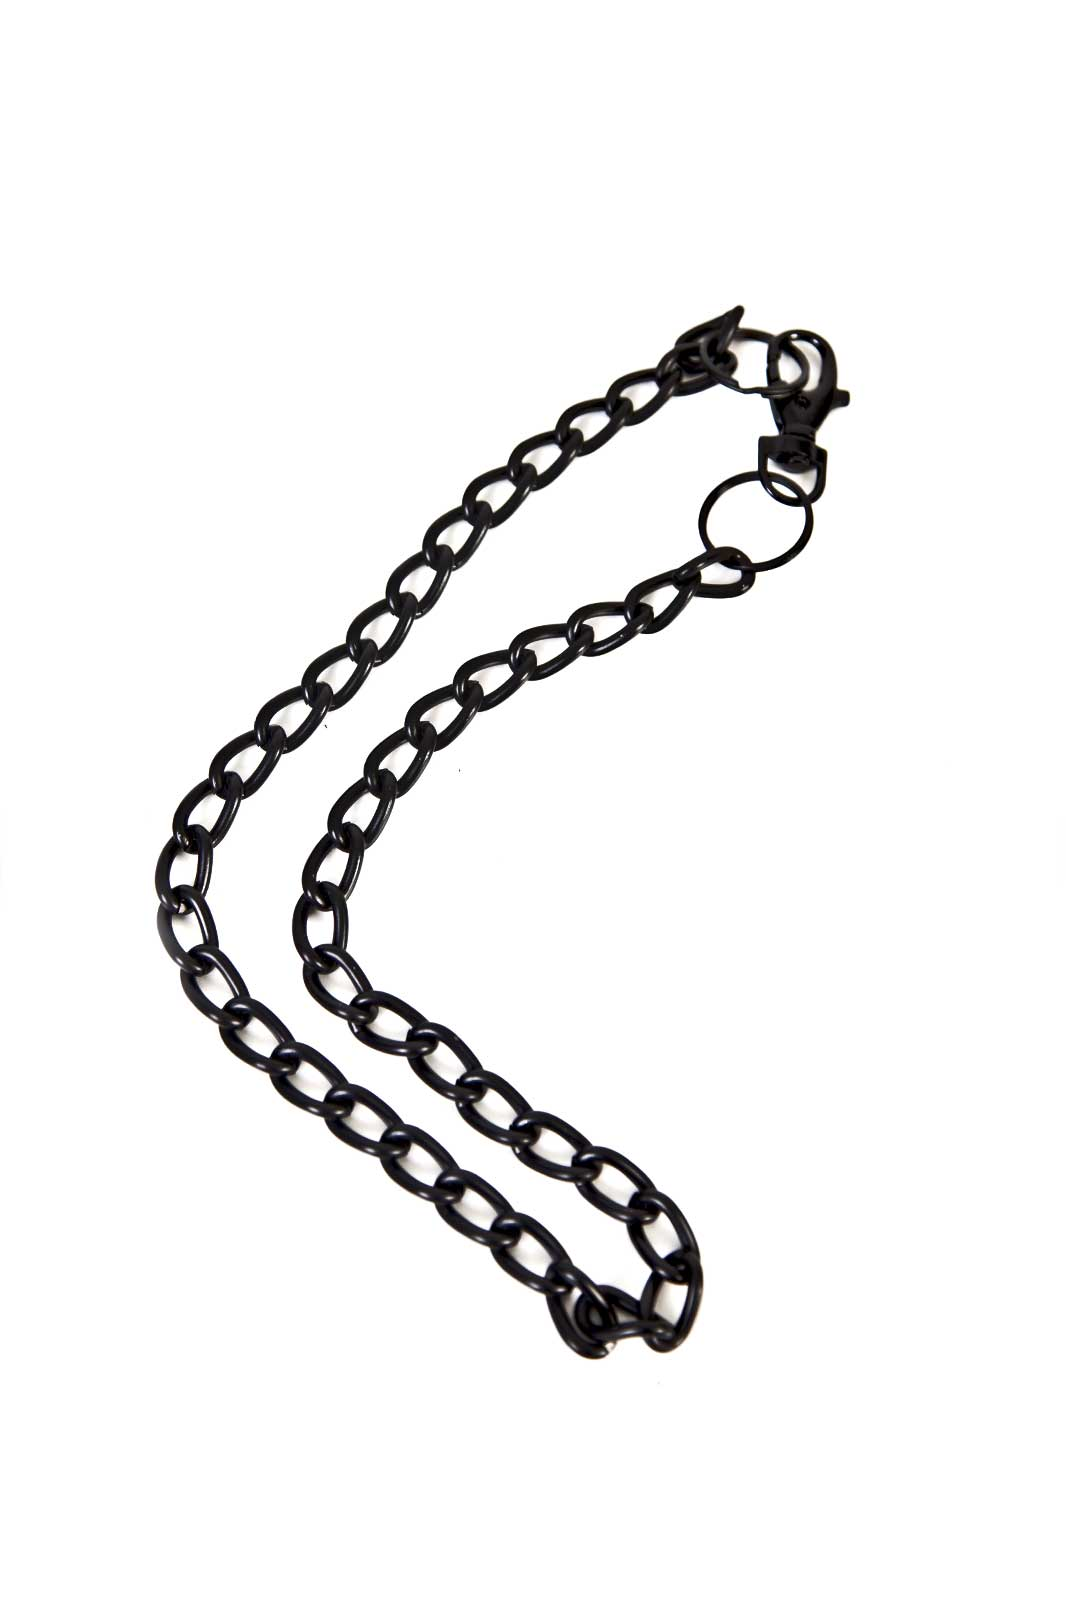 Big Key Chain Black